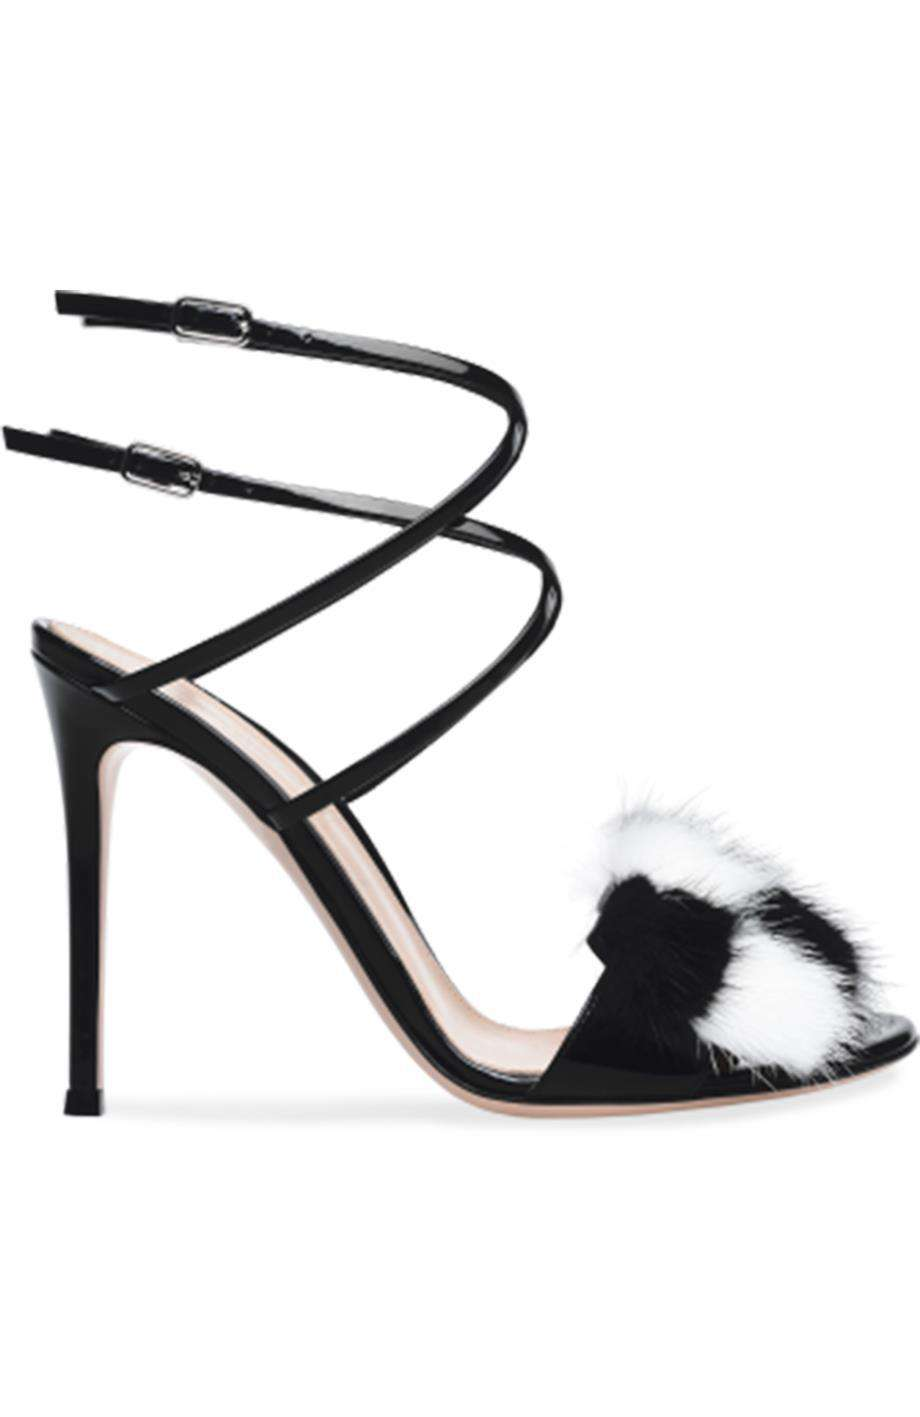 GIANVITO ROSSI ZOE FUR TRIMMED PATENT LEATHER SANDALS EU 38.5 UK 5.5 US 8.5